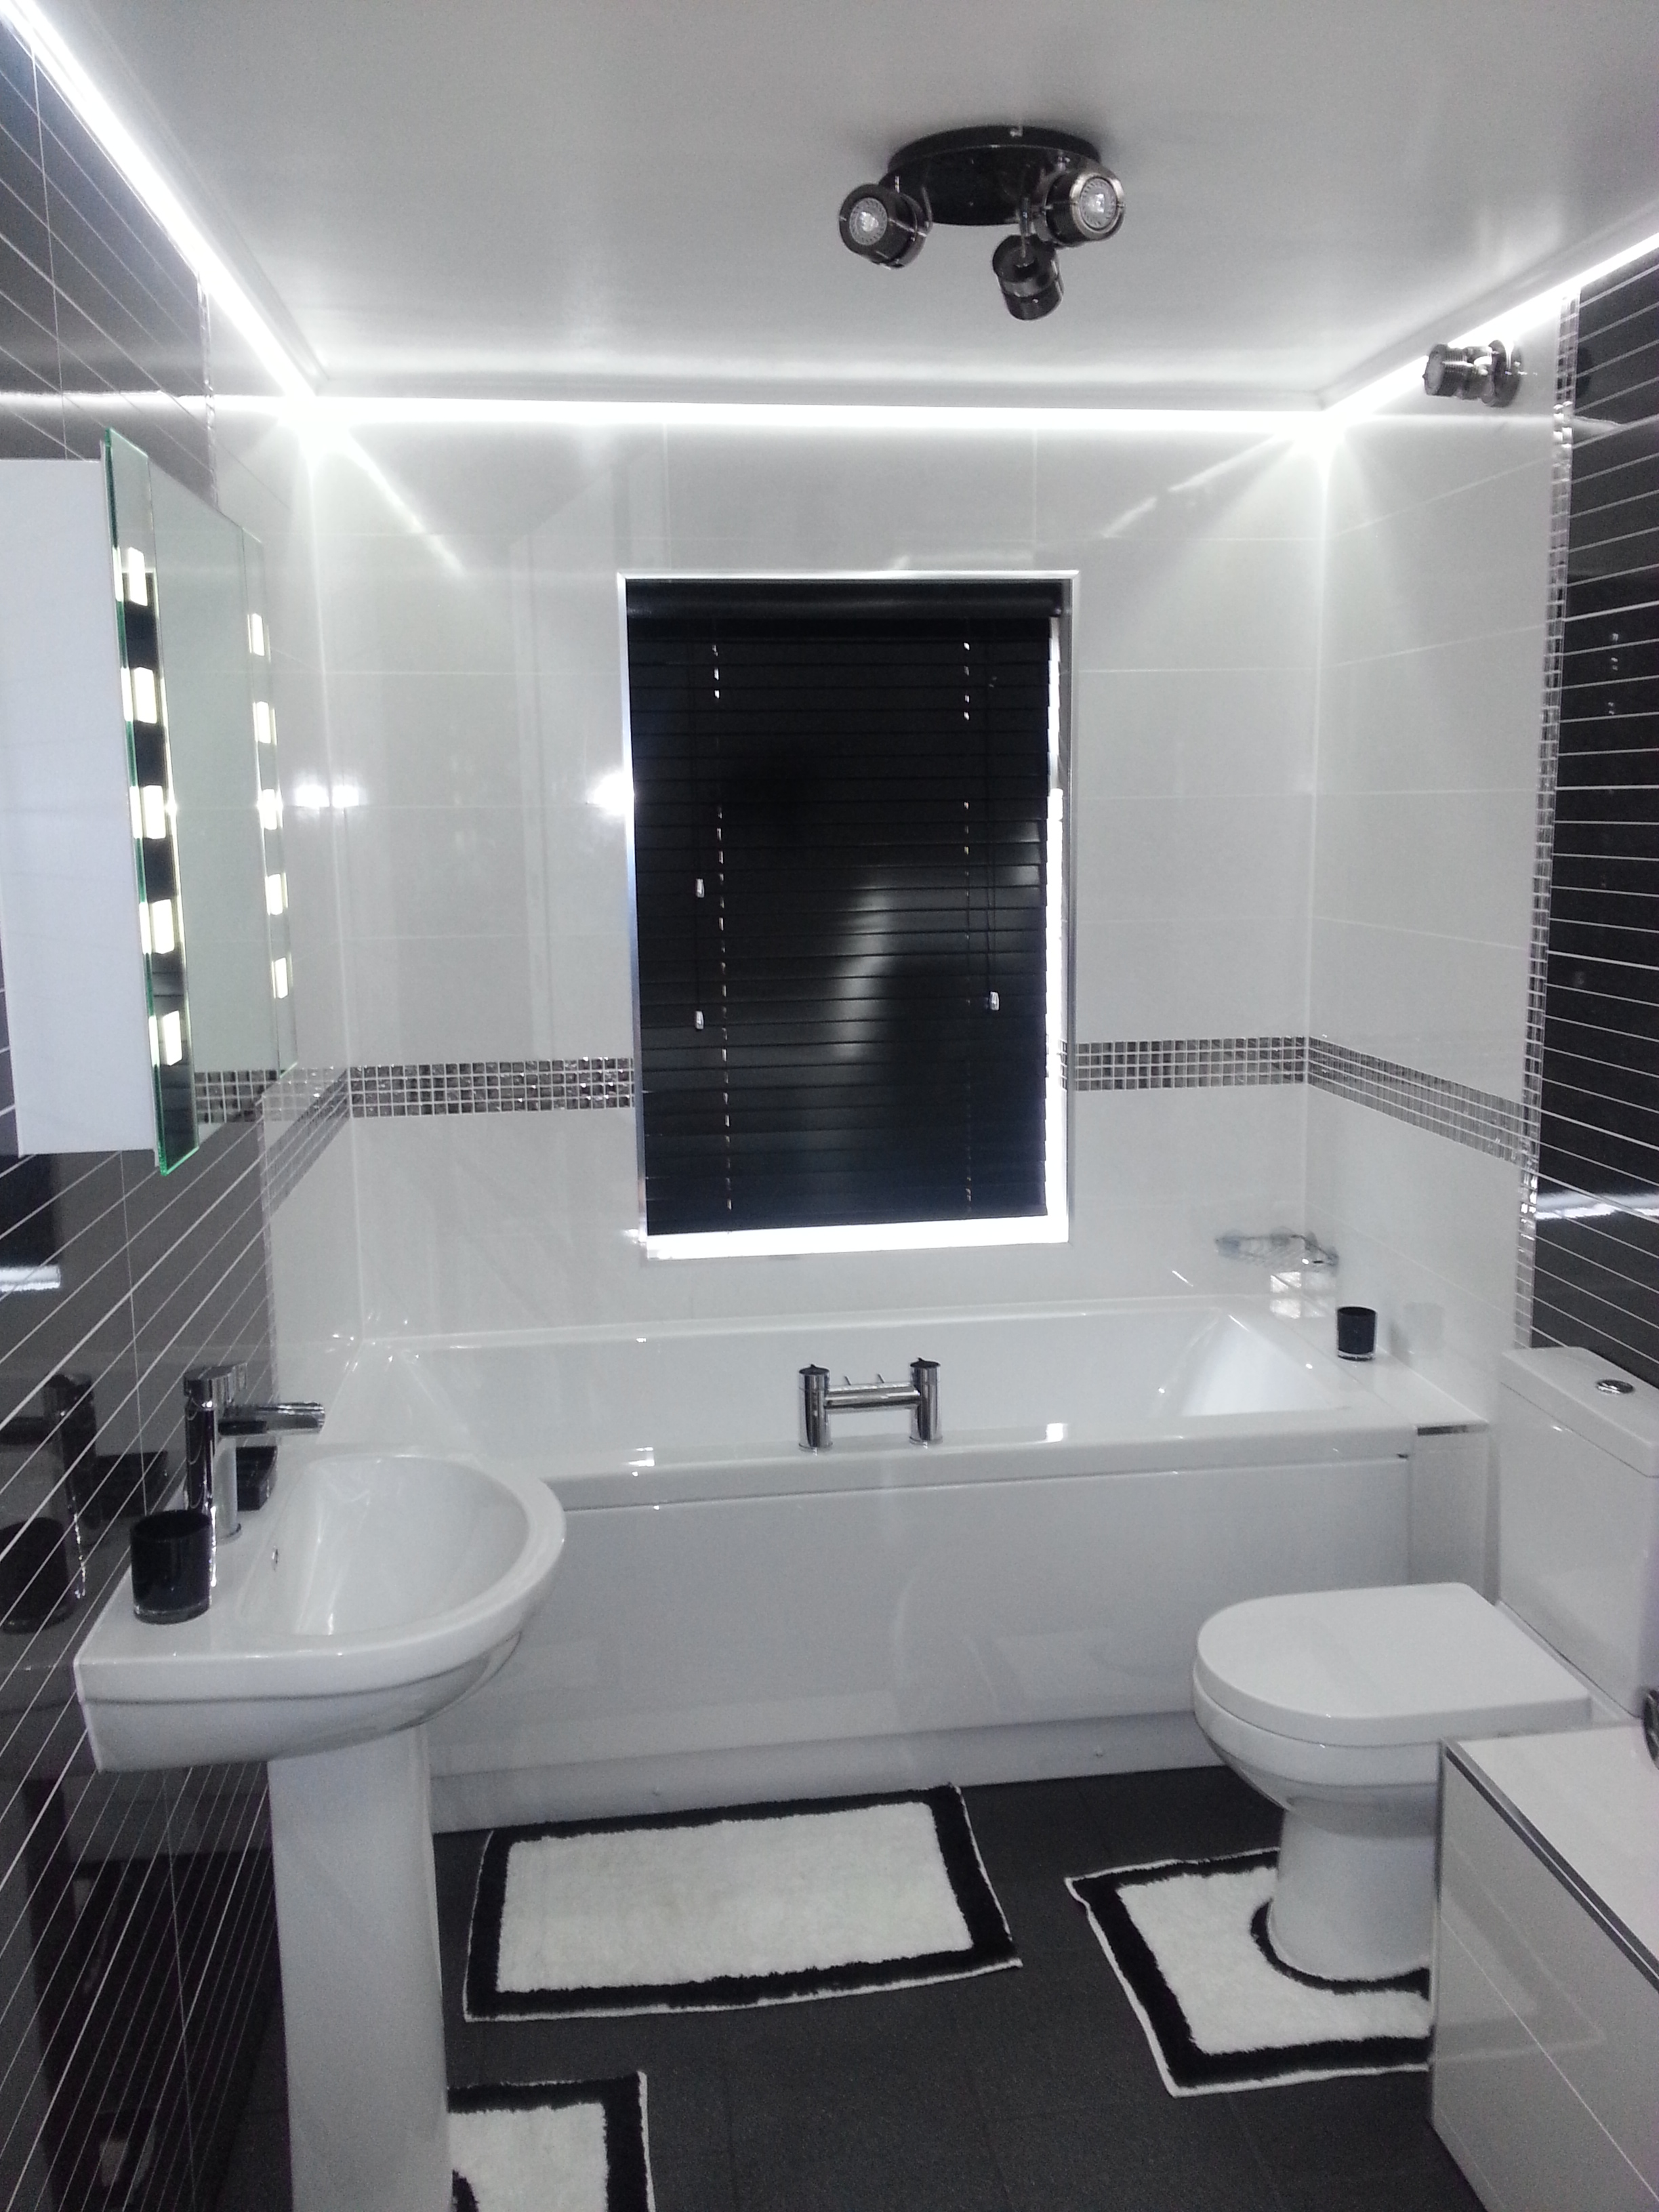 Modern Bathroom Led Light Light Span Bath On Amortech Lighting led bathroom lights